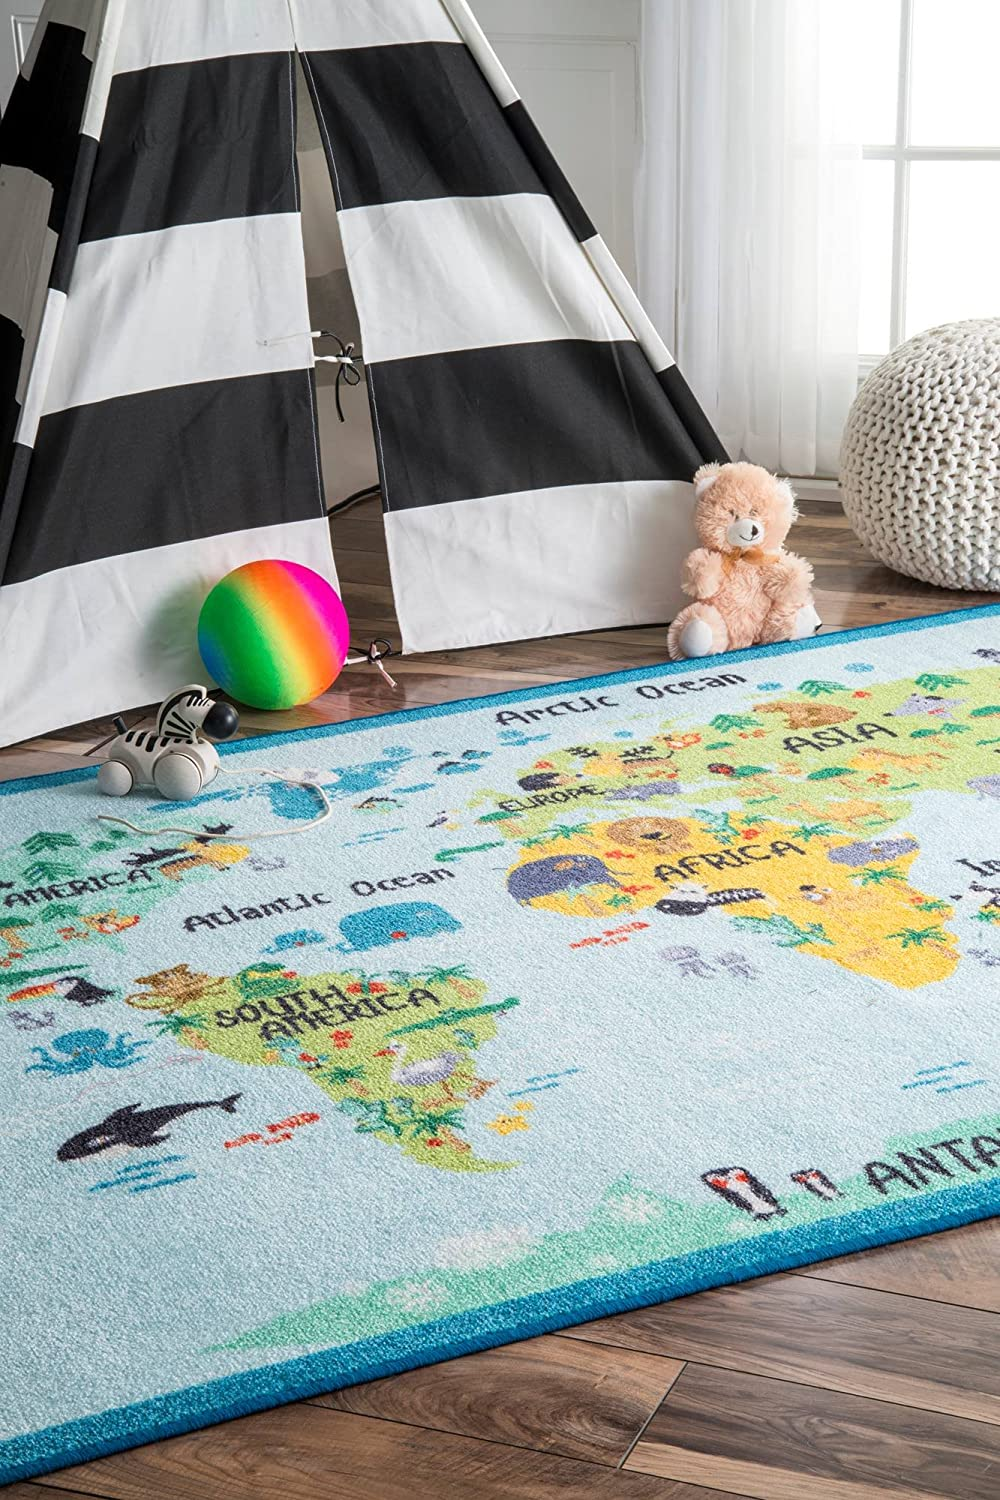 nuLOOM Animal Max 78% OFF World Map Kids Area Rug x 5' Baby 3' Deluxe Blue 3